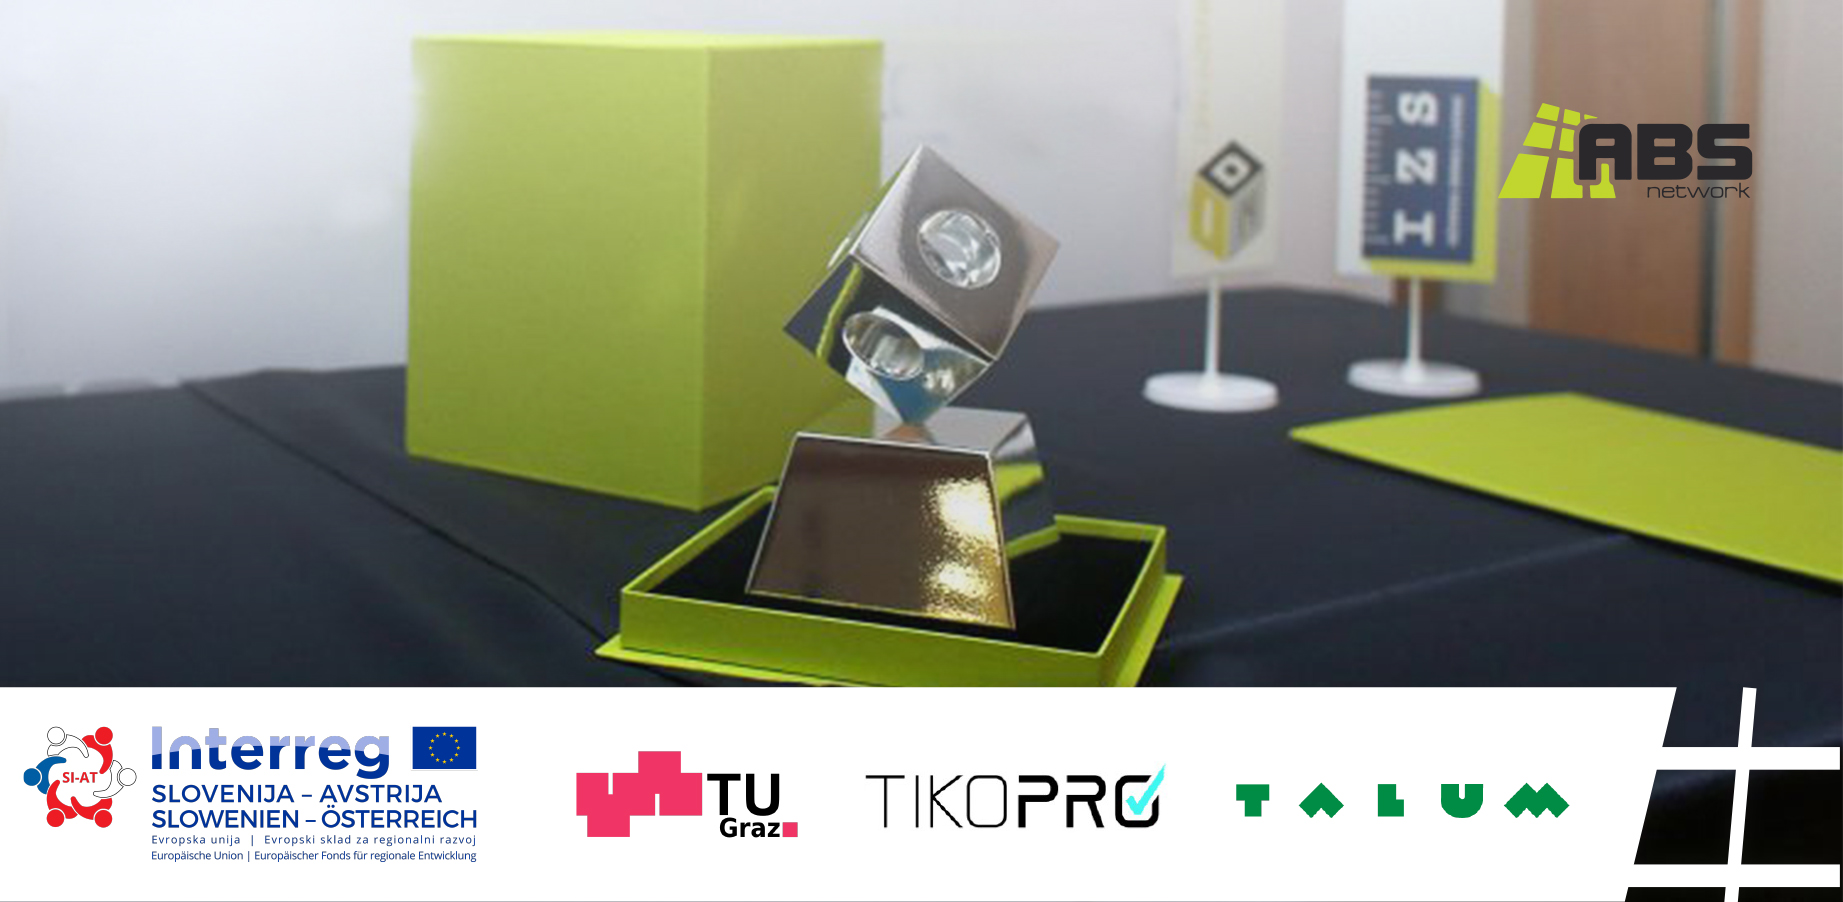 INNOVATION and Jožef MRAK'S AWARD FOR INNOVATION IN CONSTRUCTION